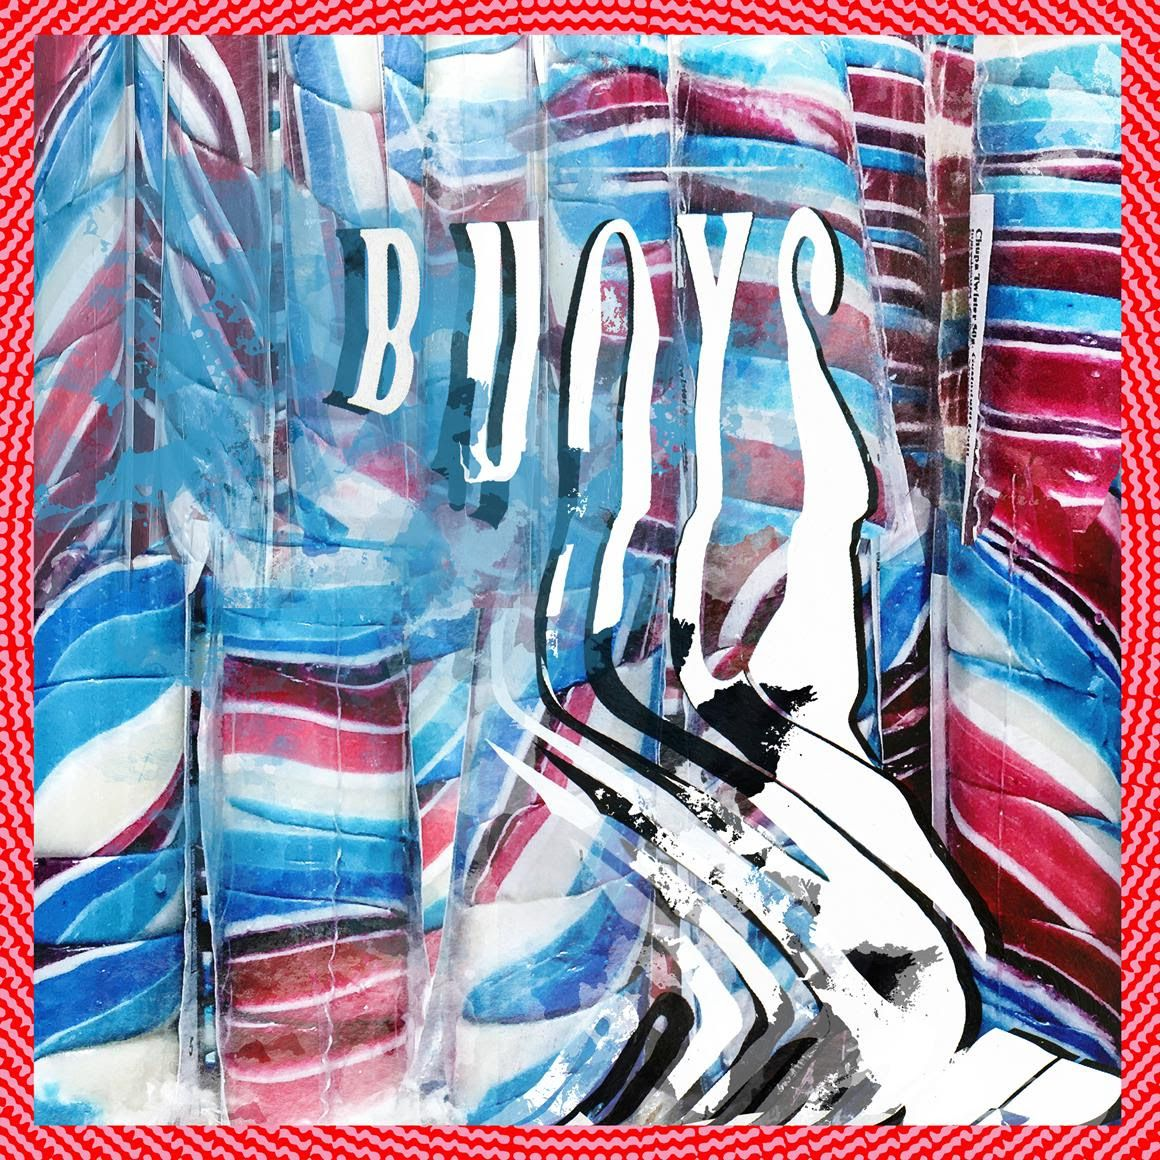 Album art for Panda Bear's 'Buoys', due out on Feb 8 via Domino Records.